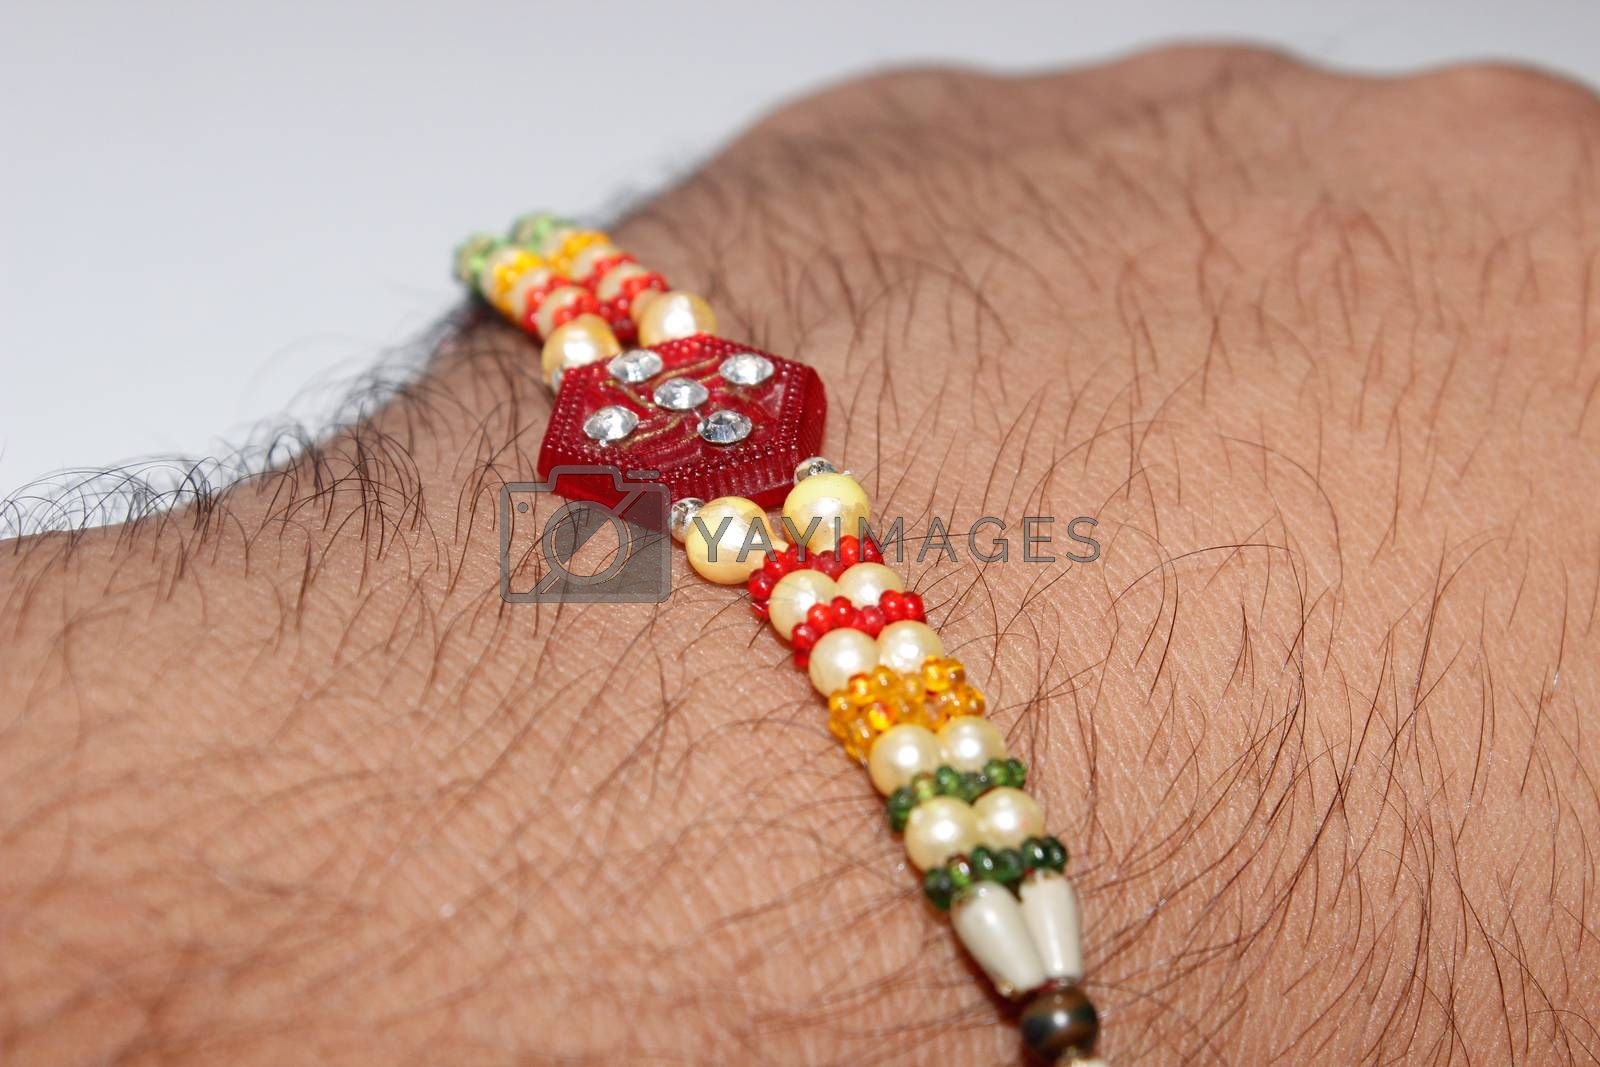 A picture of hand bracelets with selected focus